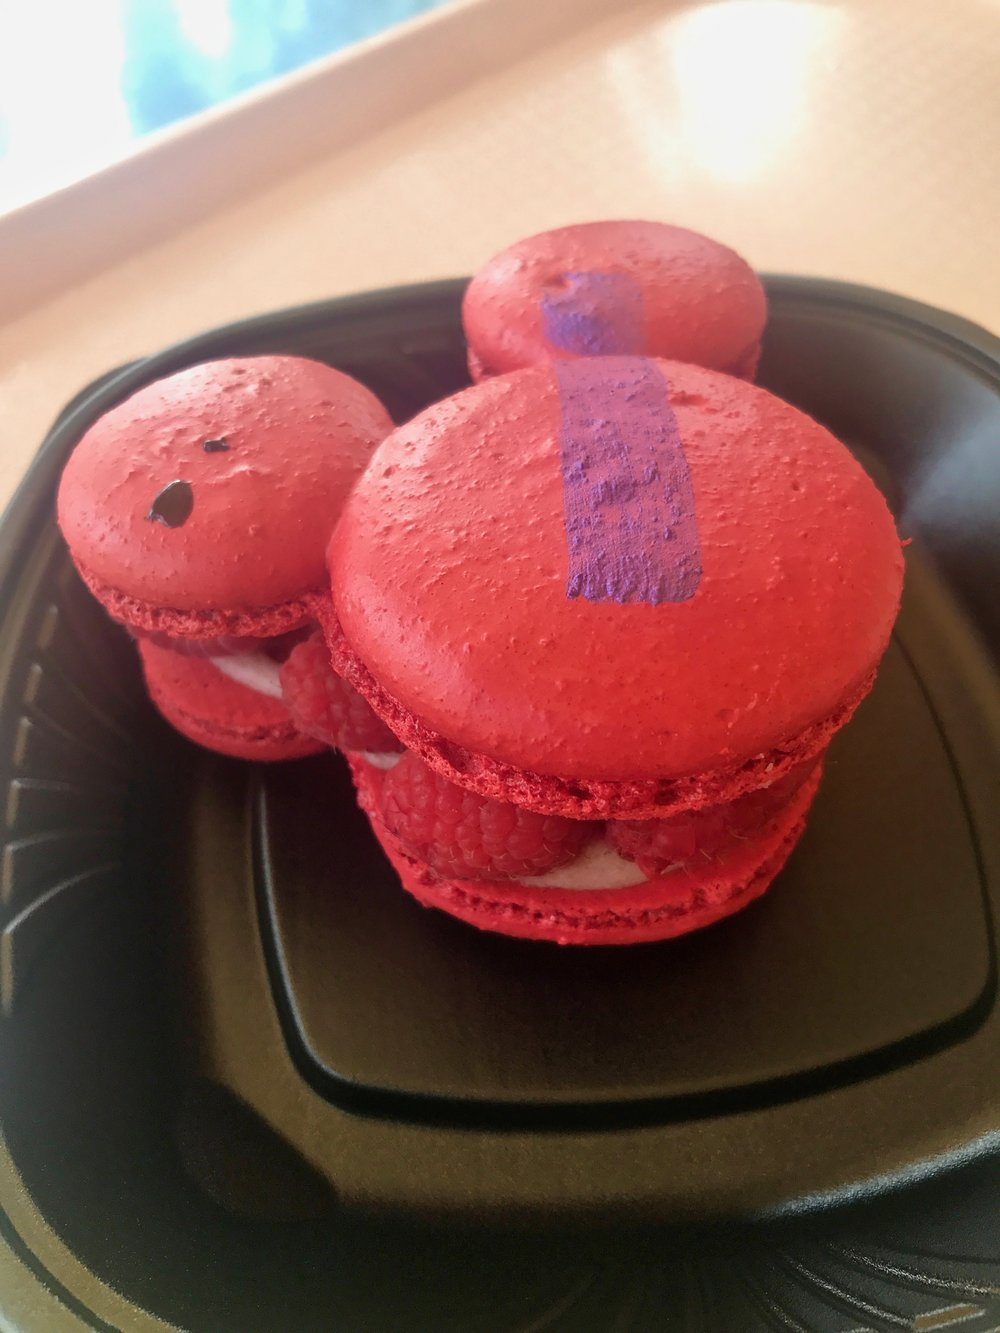 Mickey Macaron at Disney World - How to Make the Most of Disney Theme Parks as an Adult